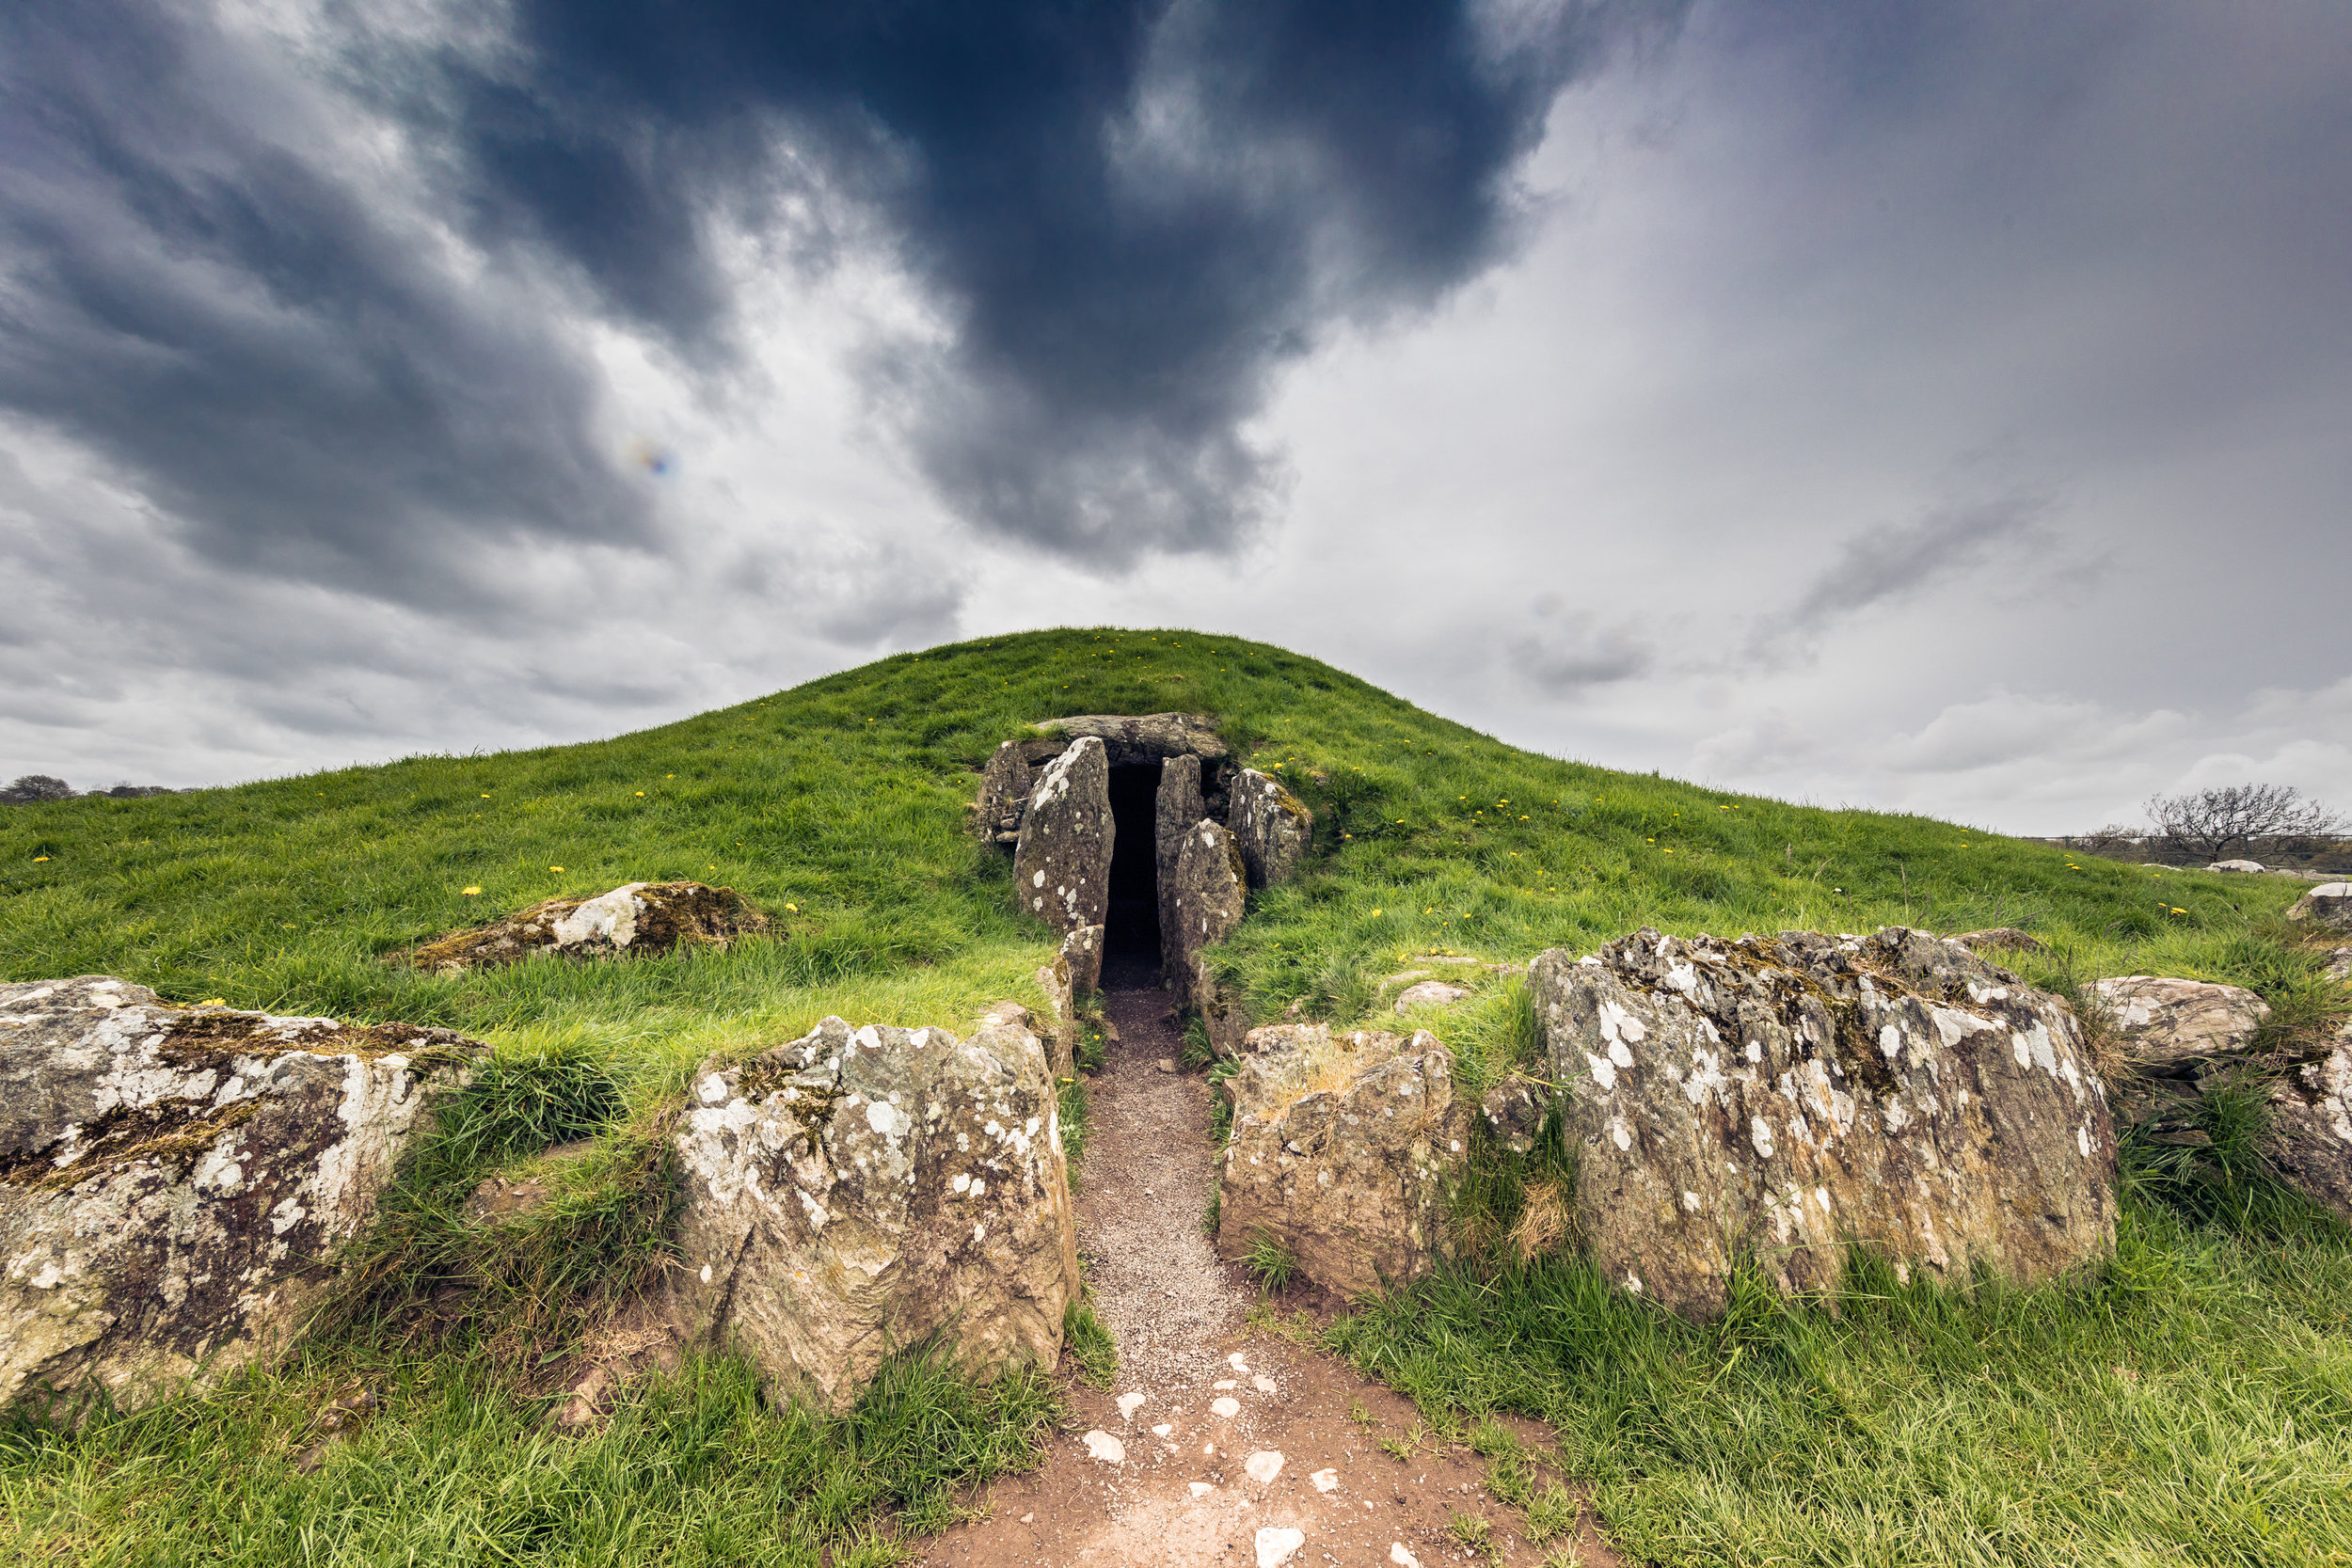 entrance that aligns to the summer solstice, bryn celli ddu ©jennifer bailey 2018